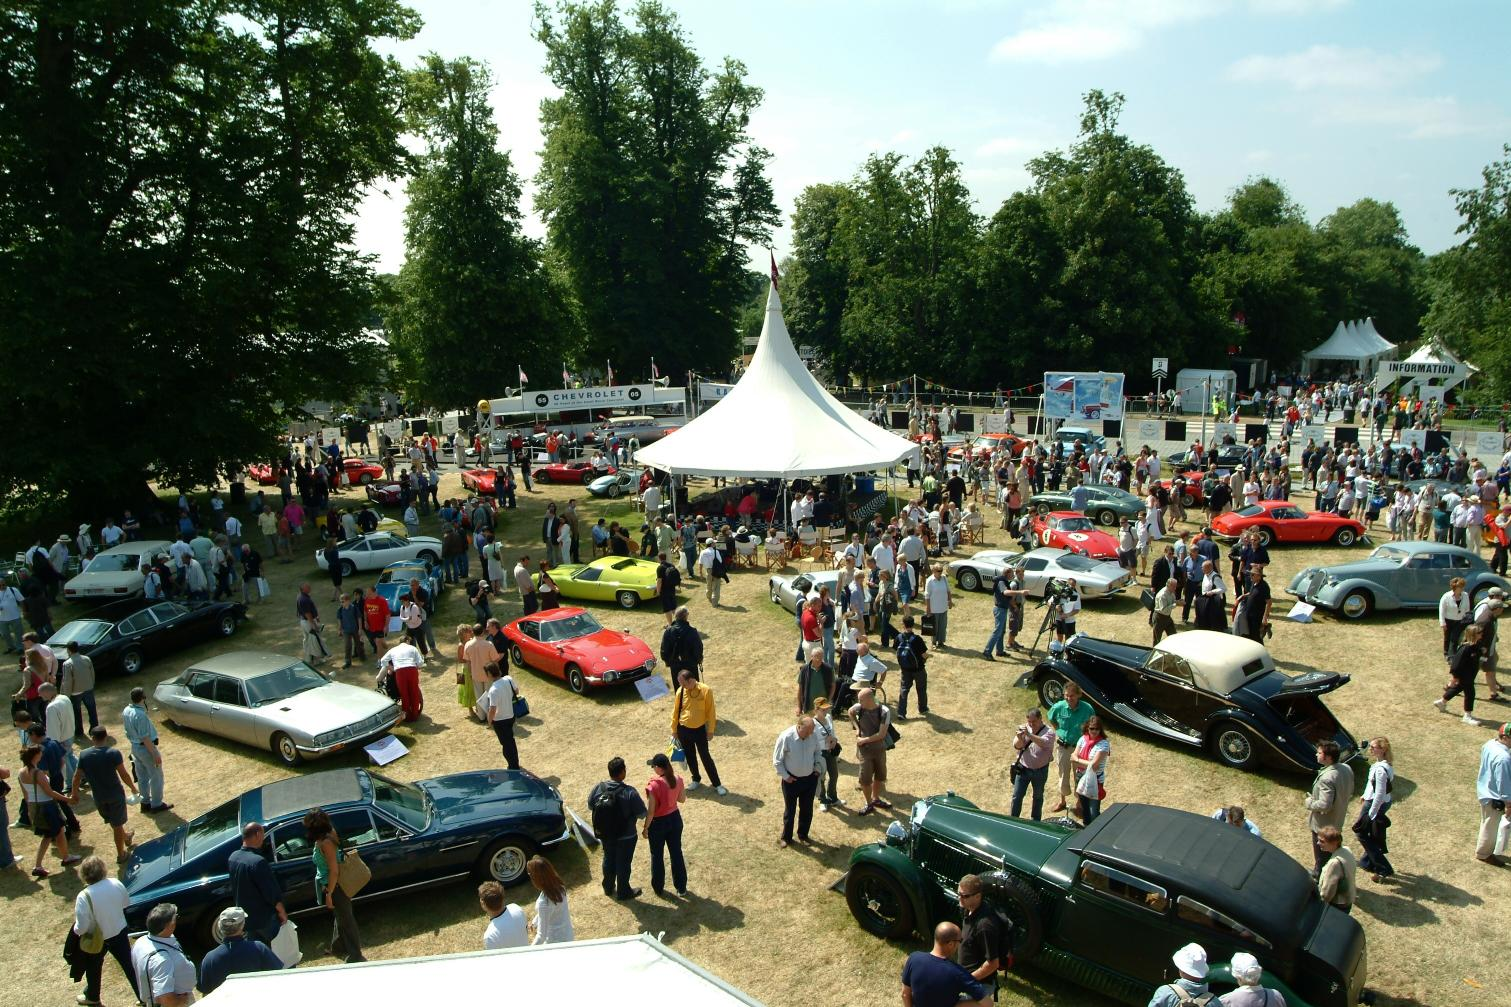 Goodwood-Festival-of-Speed-2017-large-5